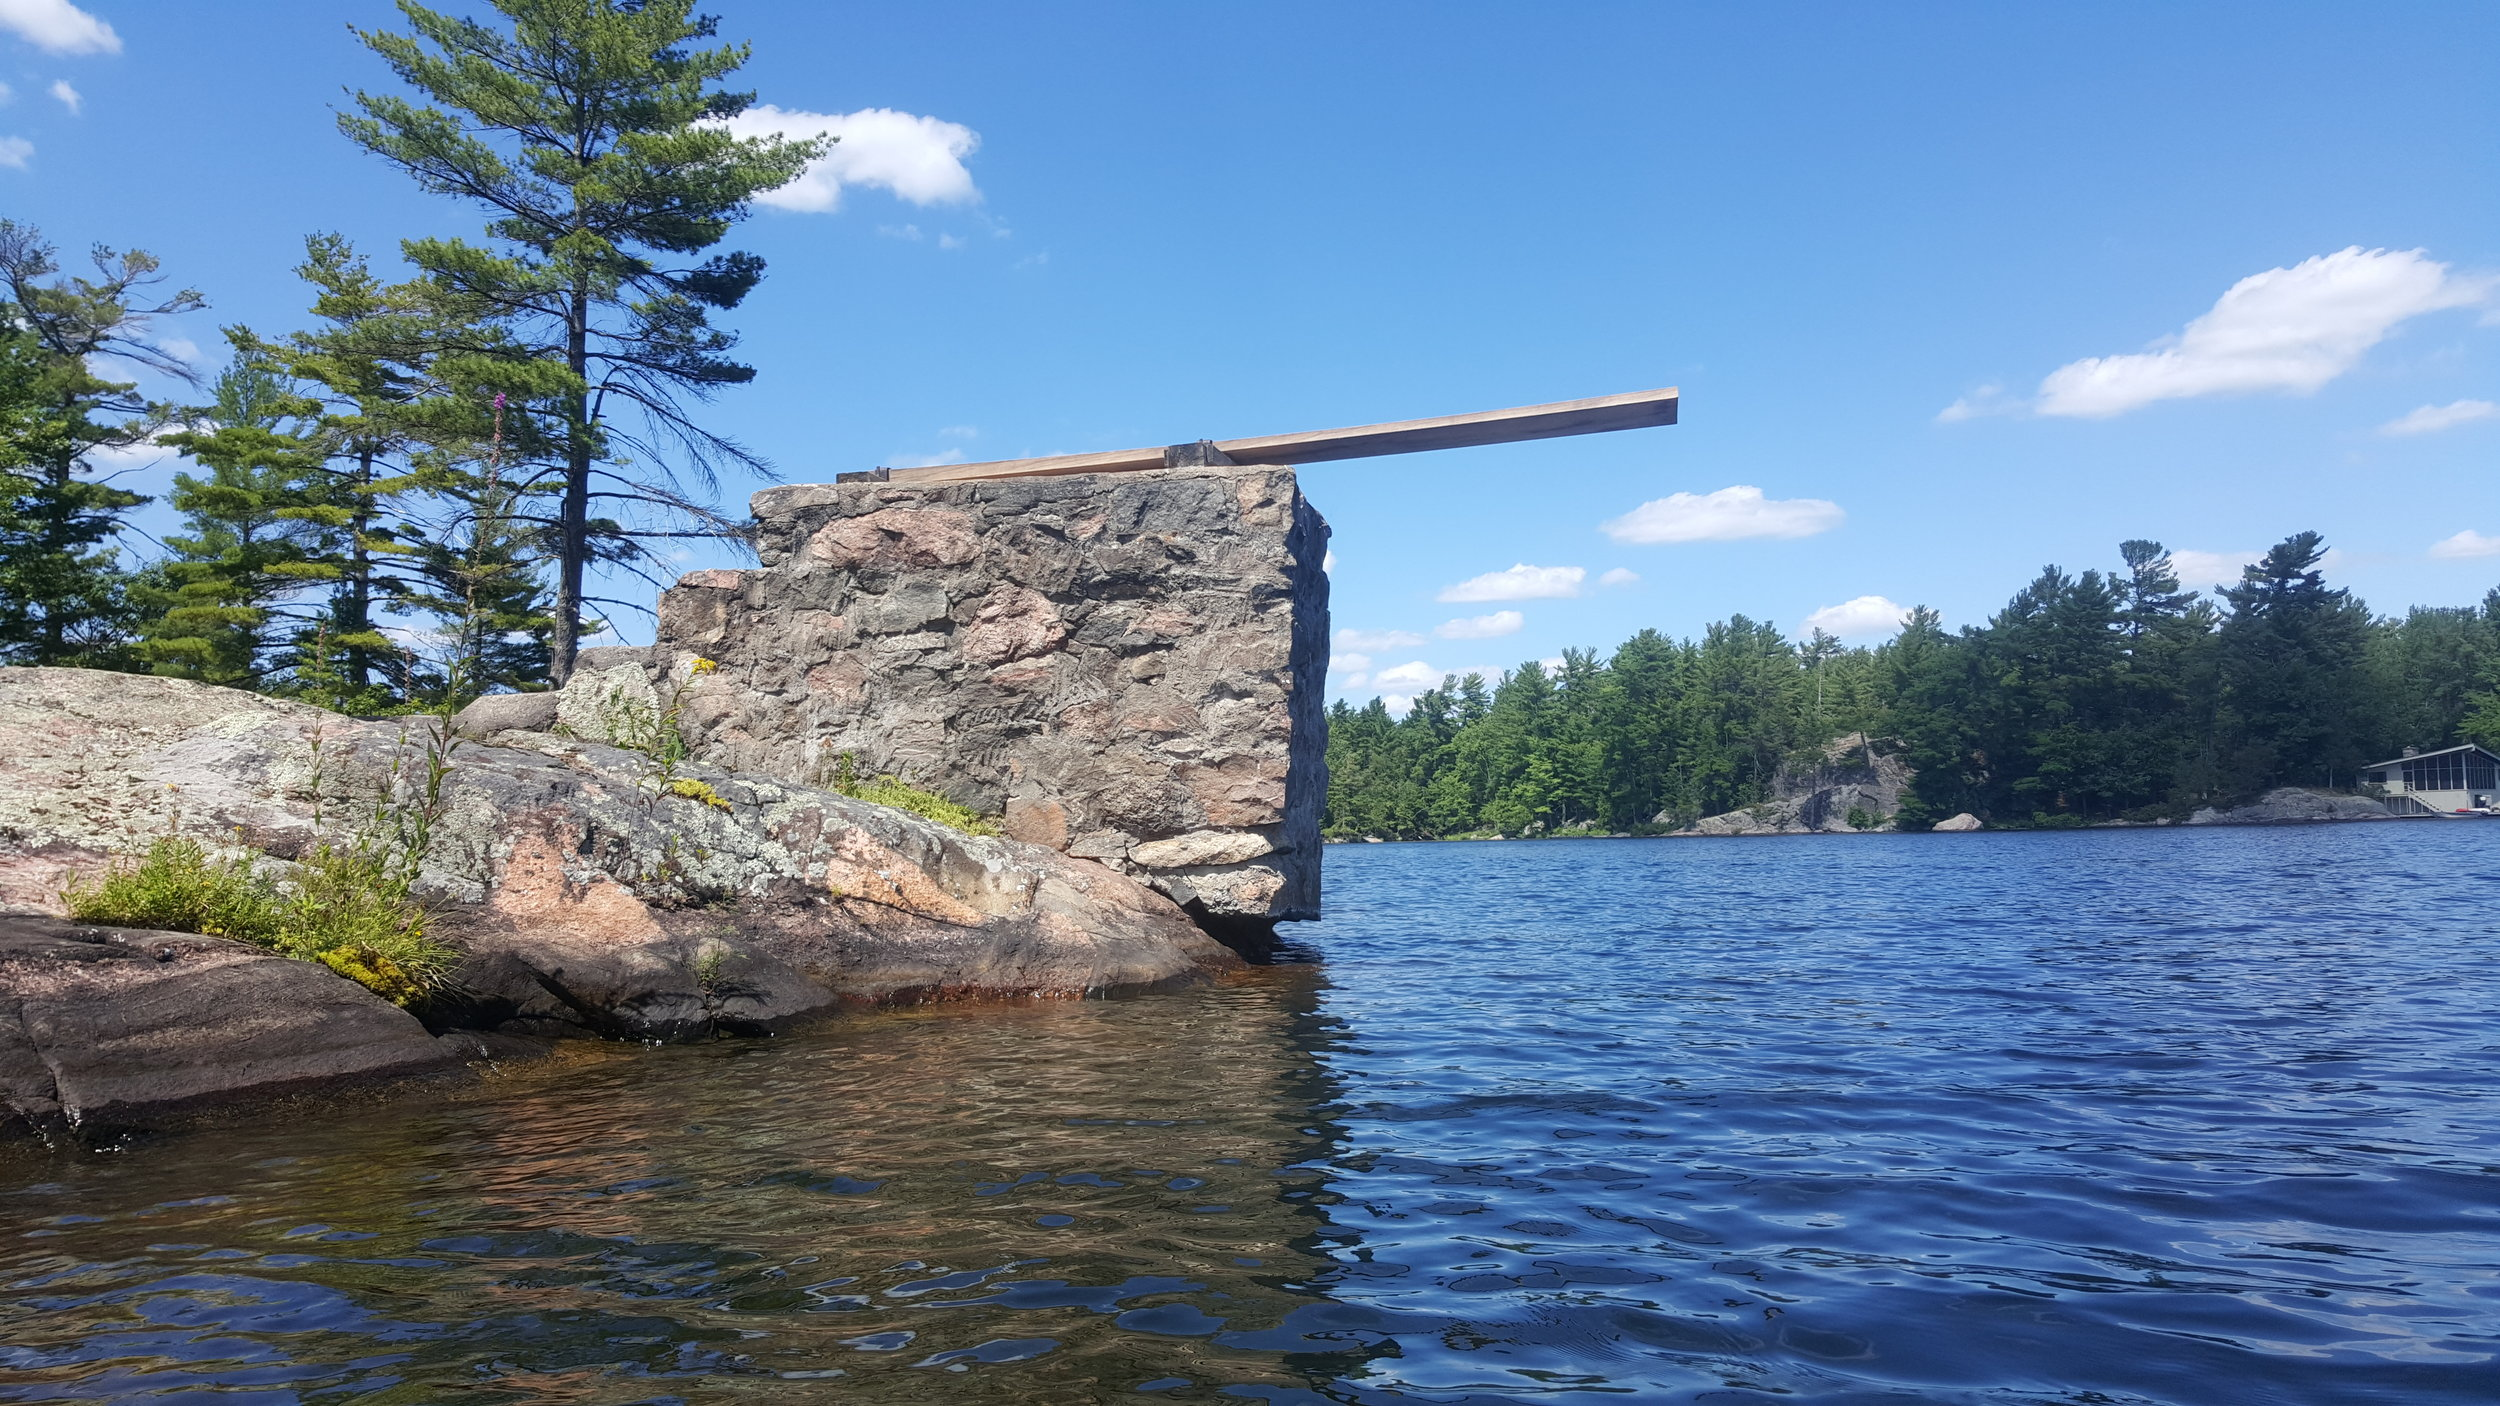 A reliable diving board is still a diving board.